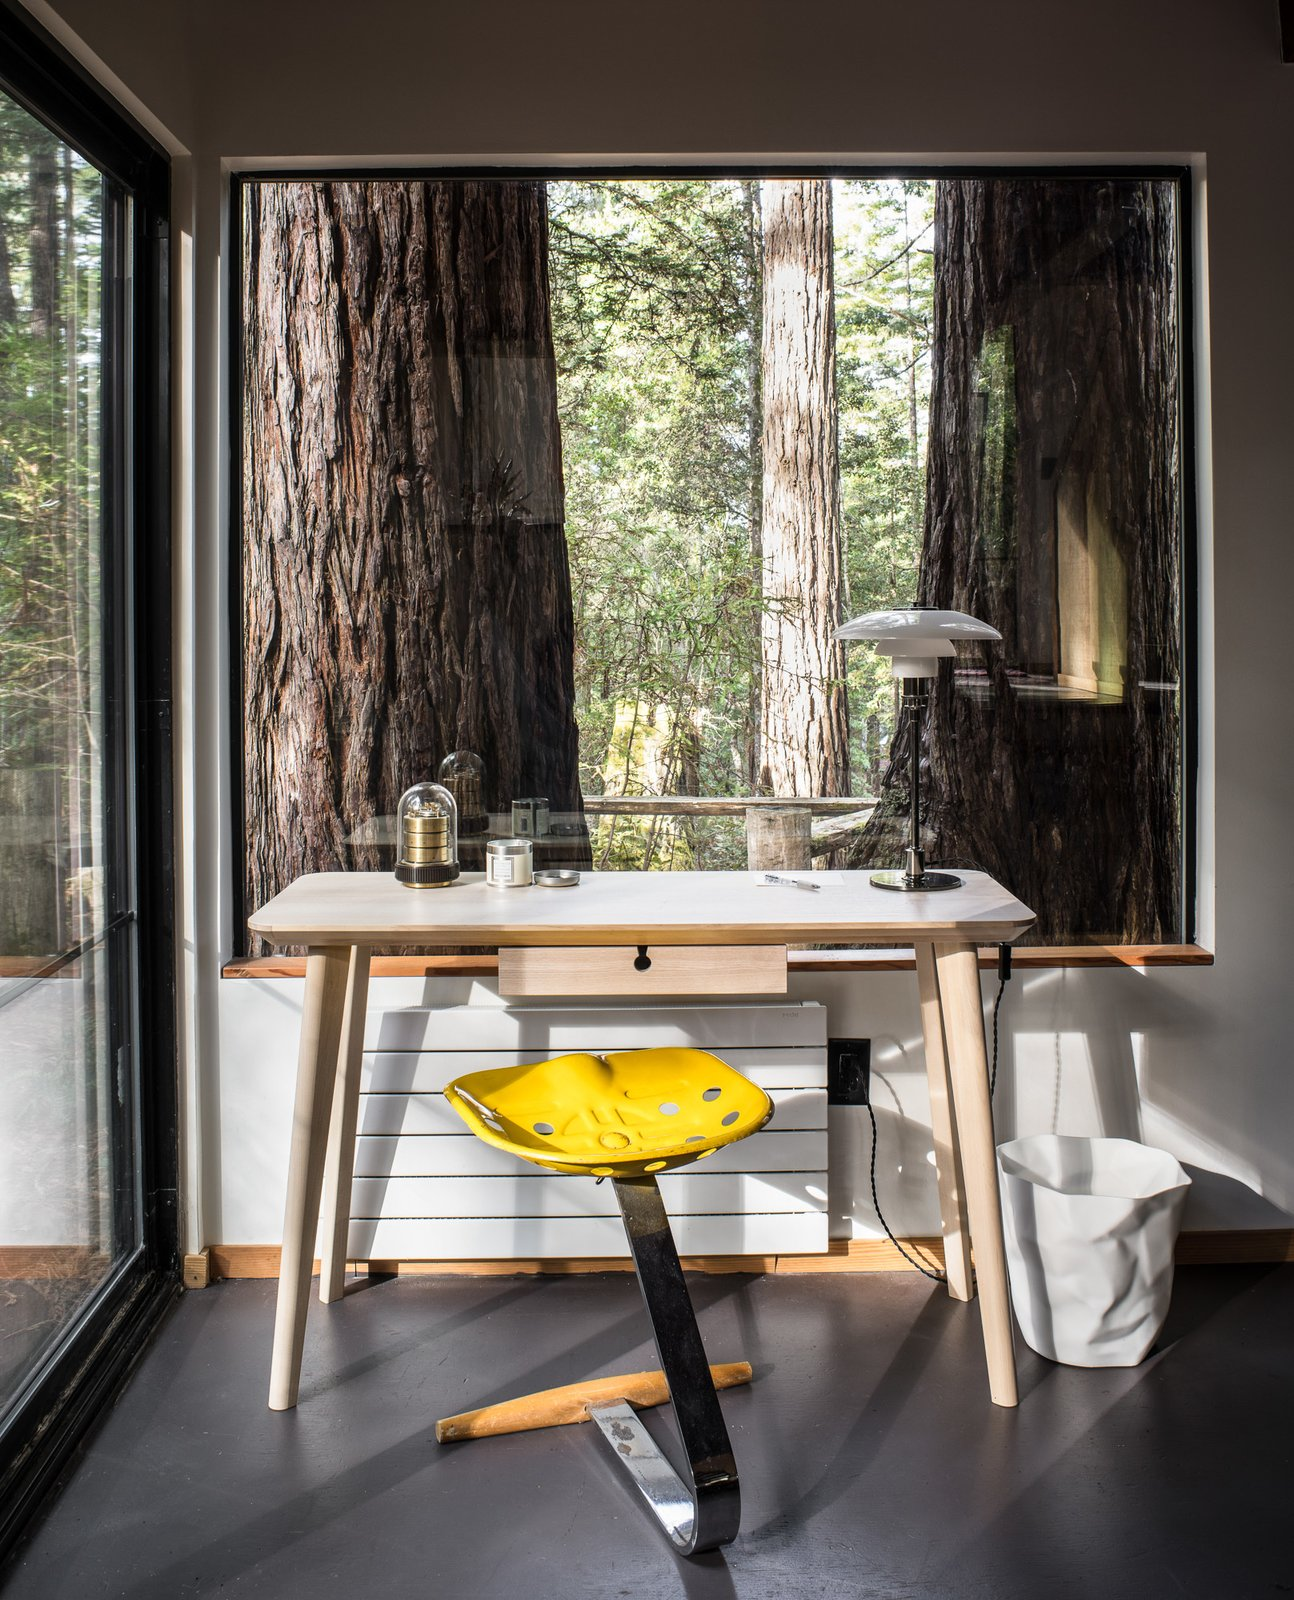 A small office space overlooks the redwood surroundings.